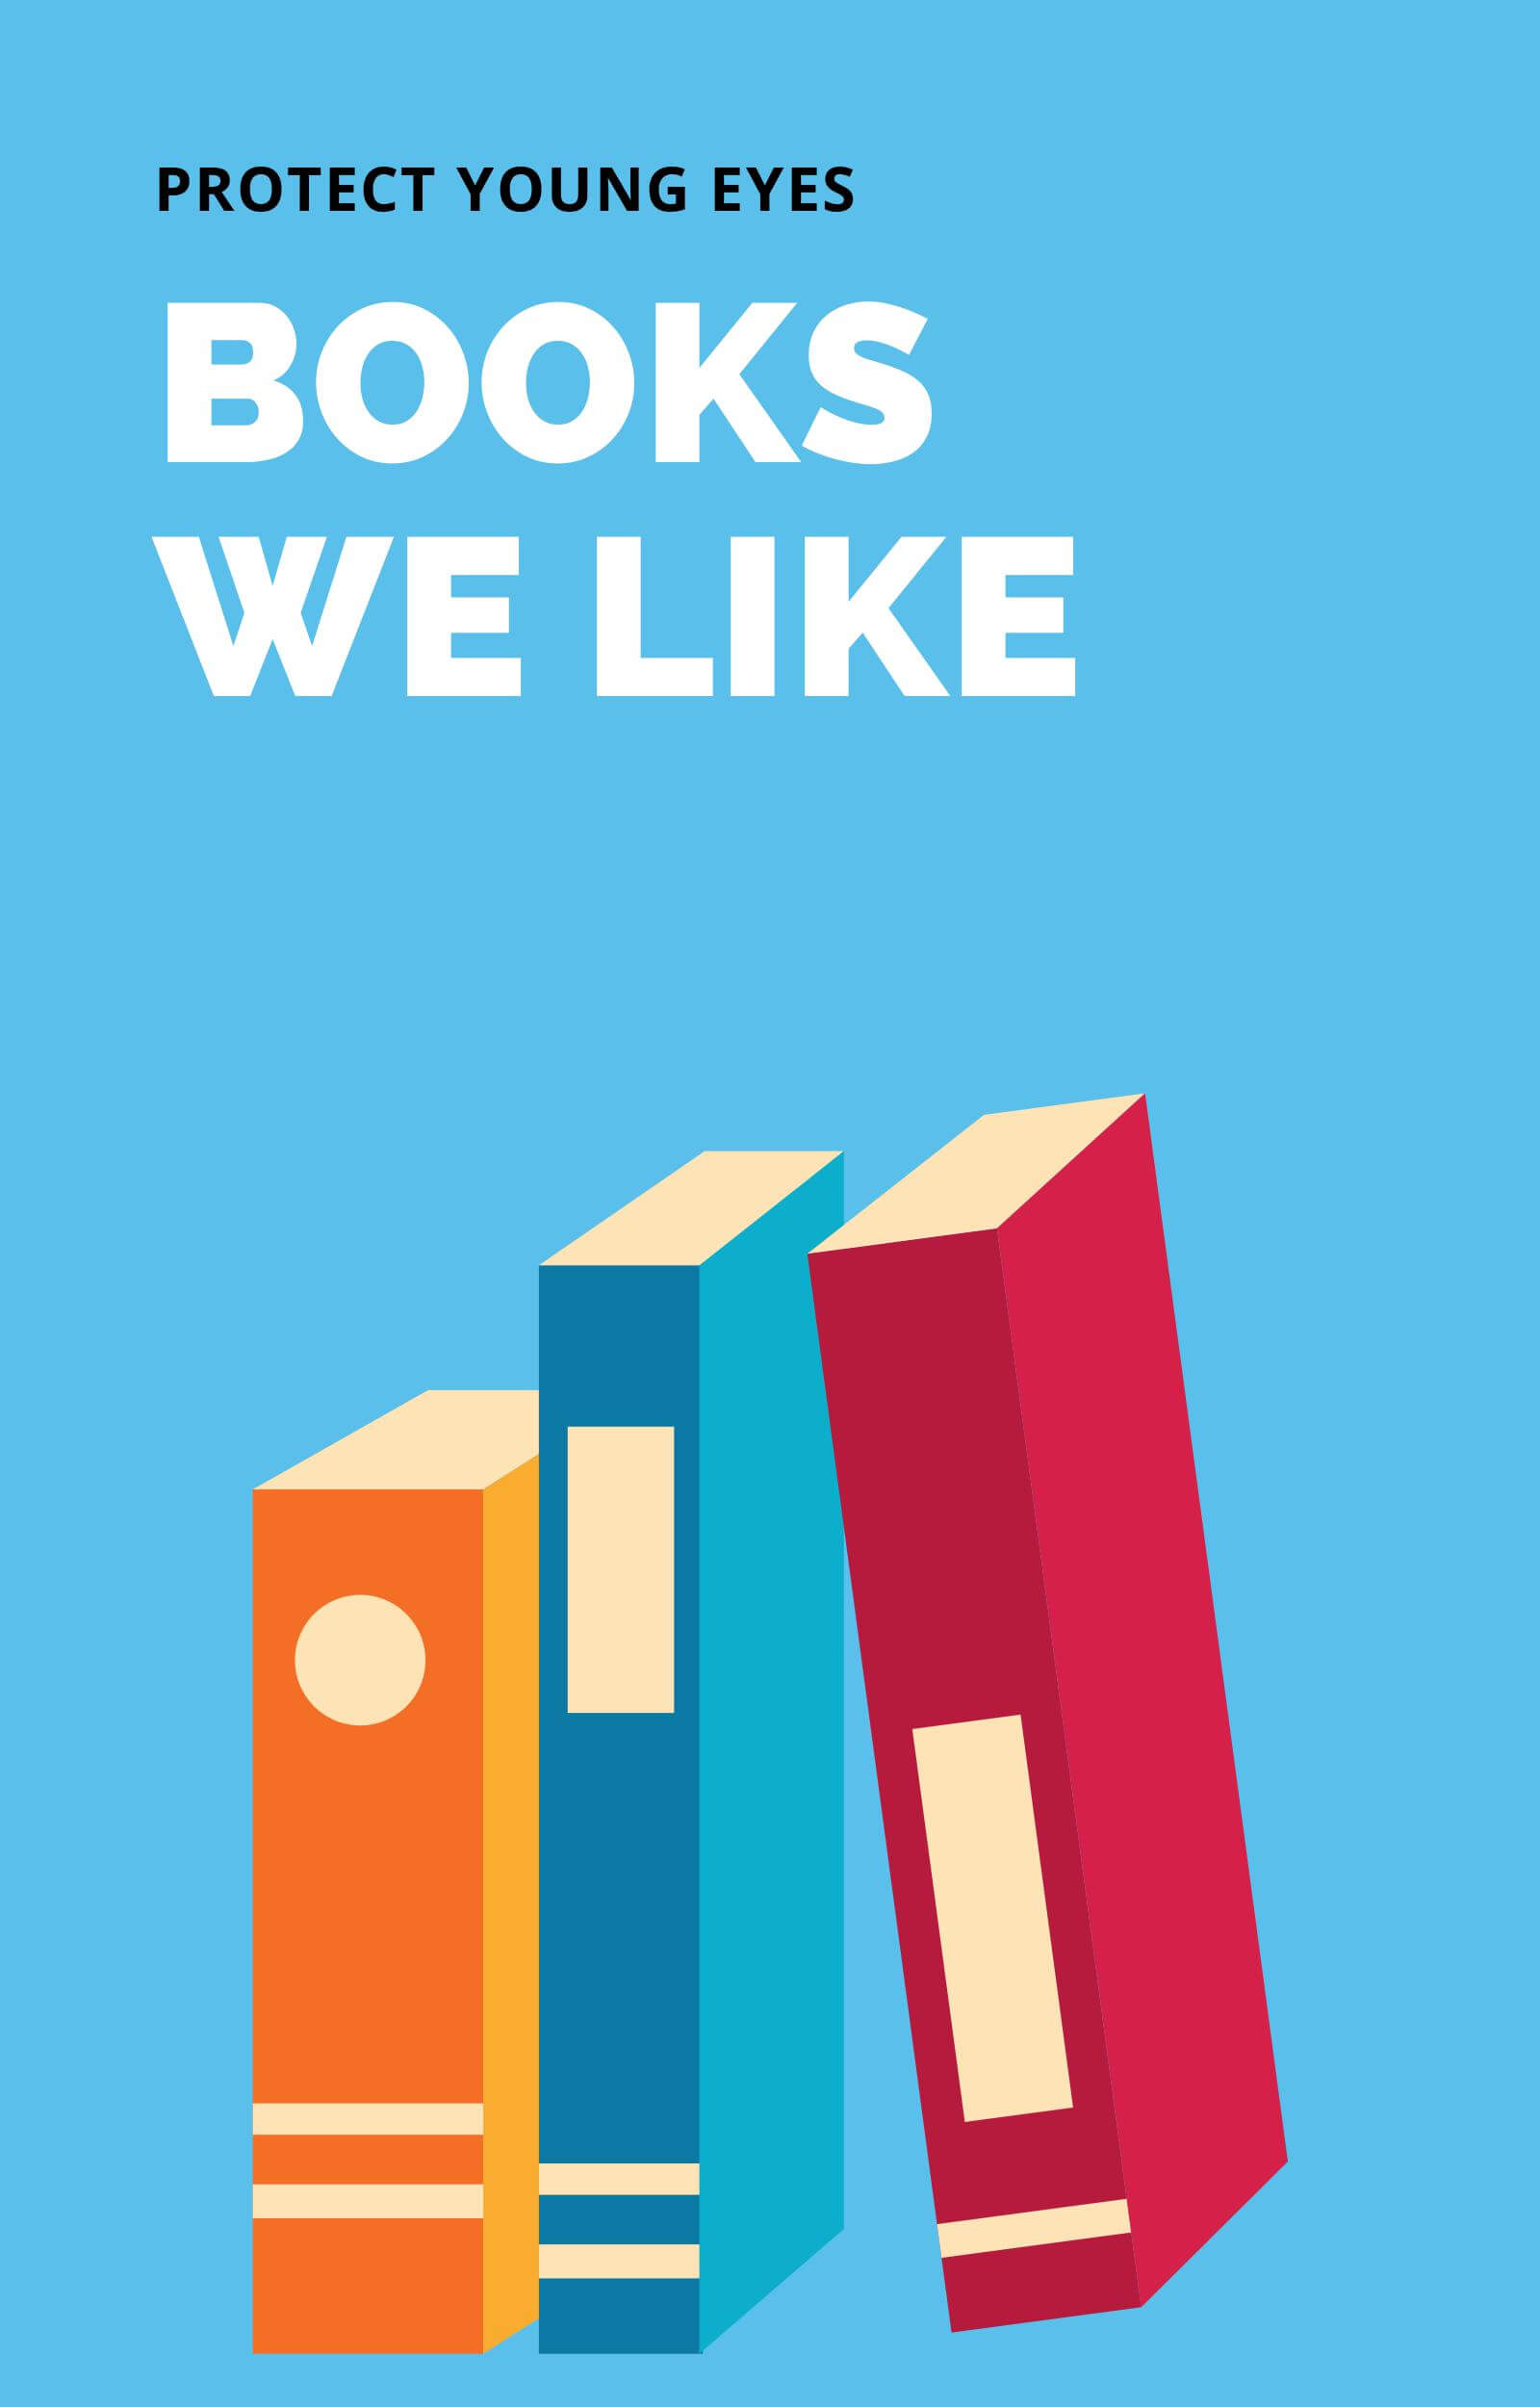 Books we Recommend - PYE